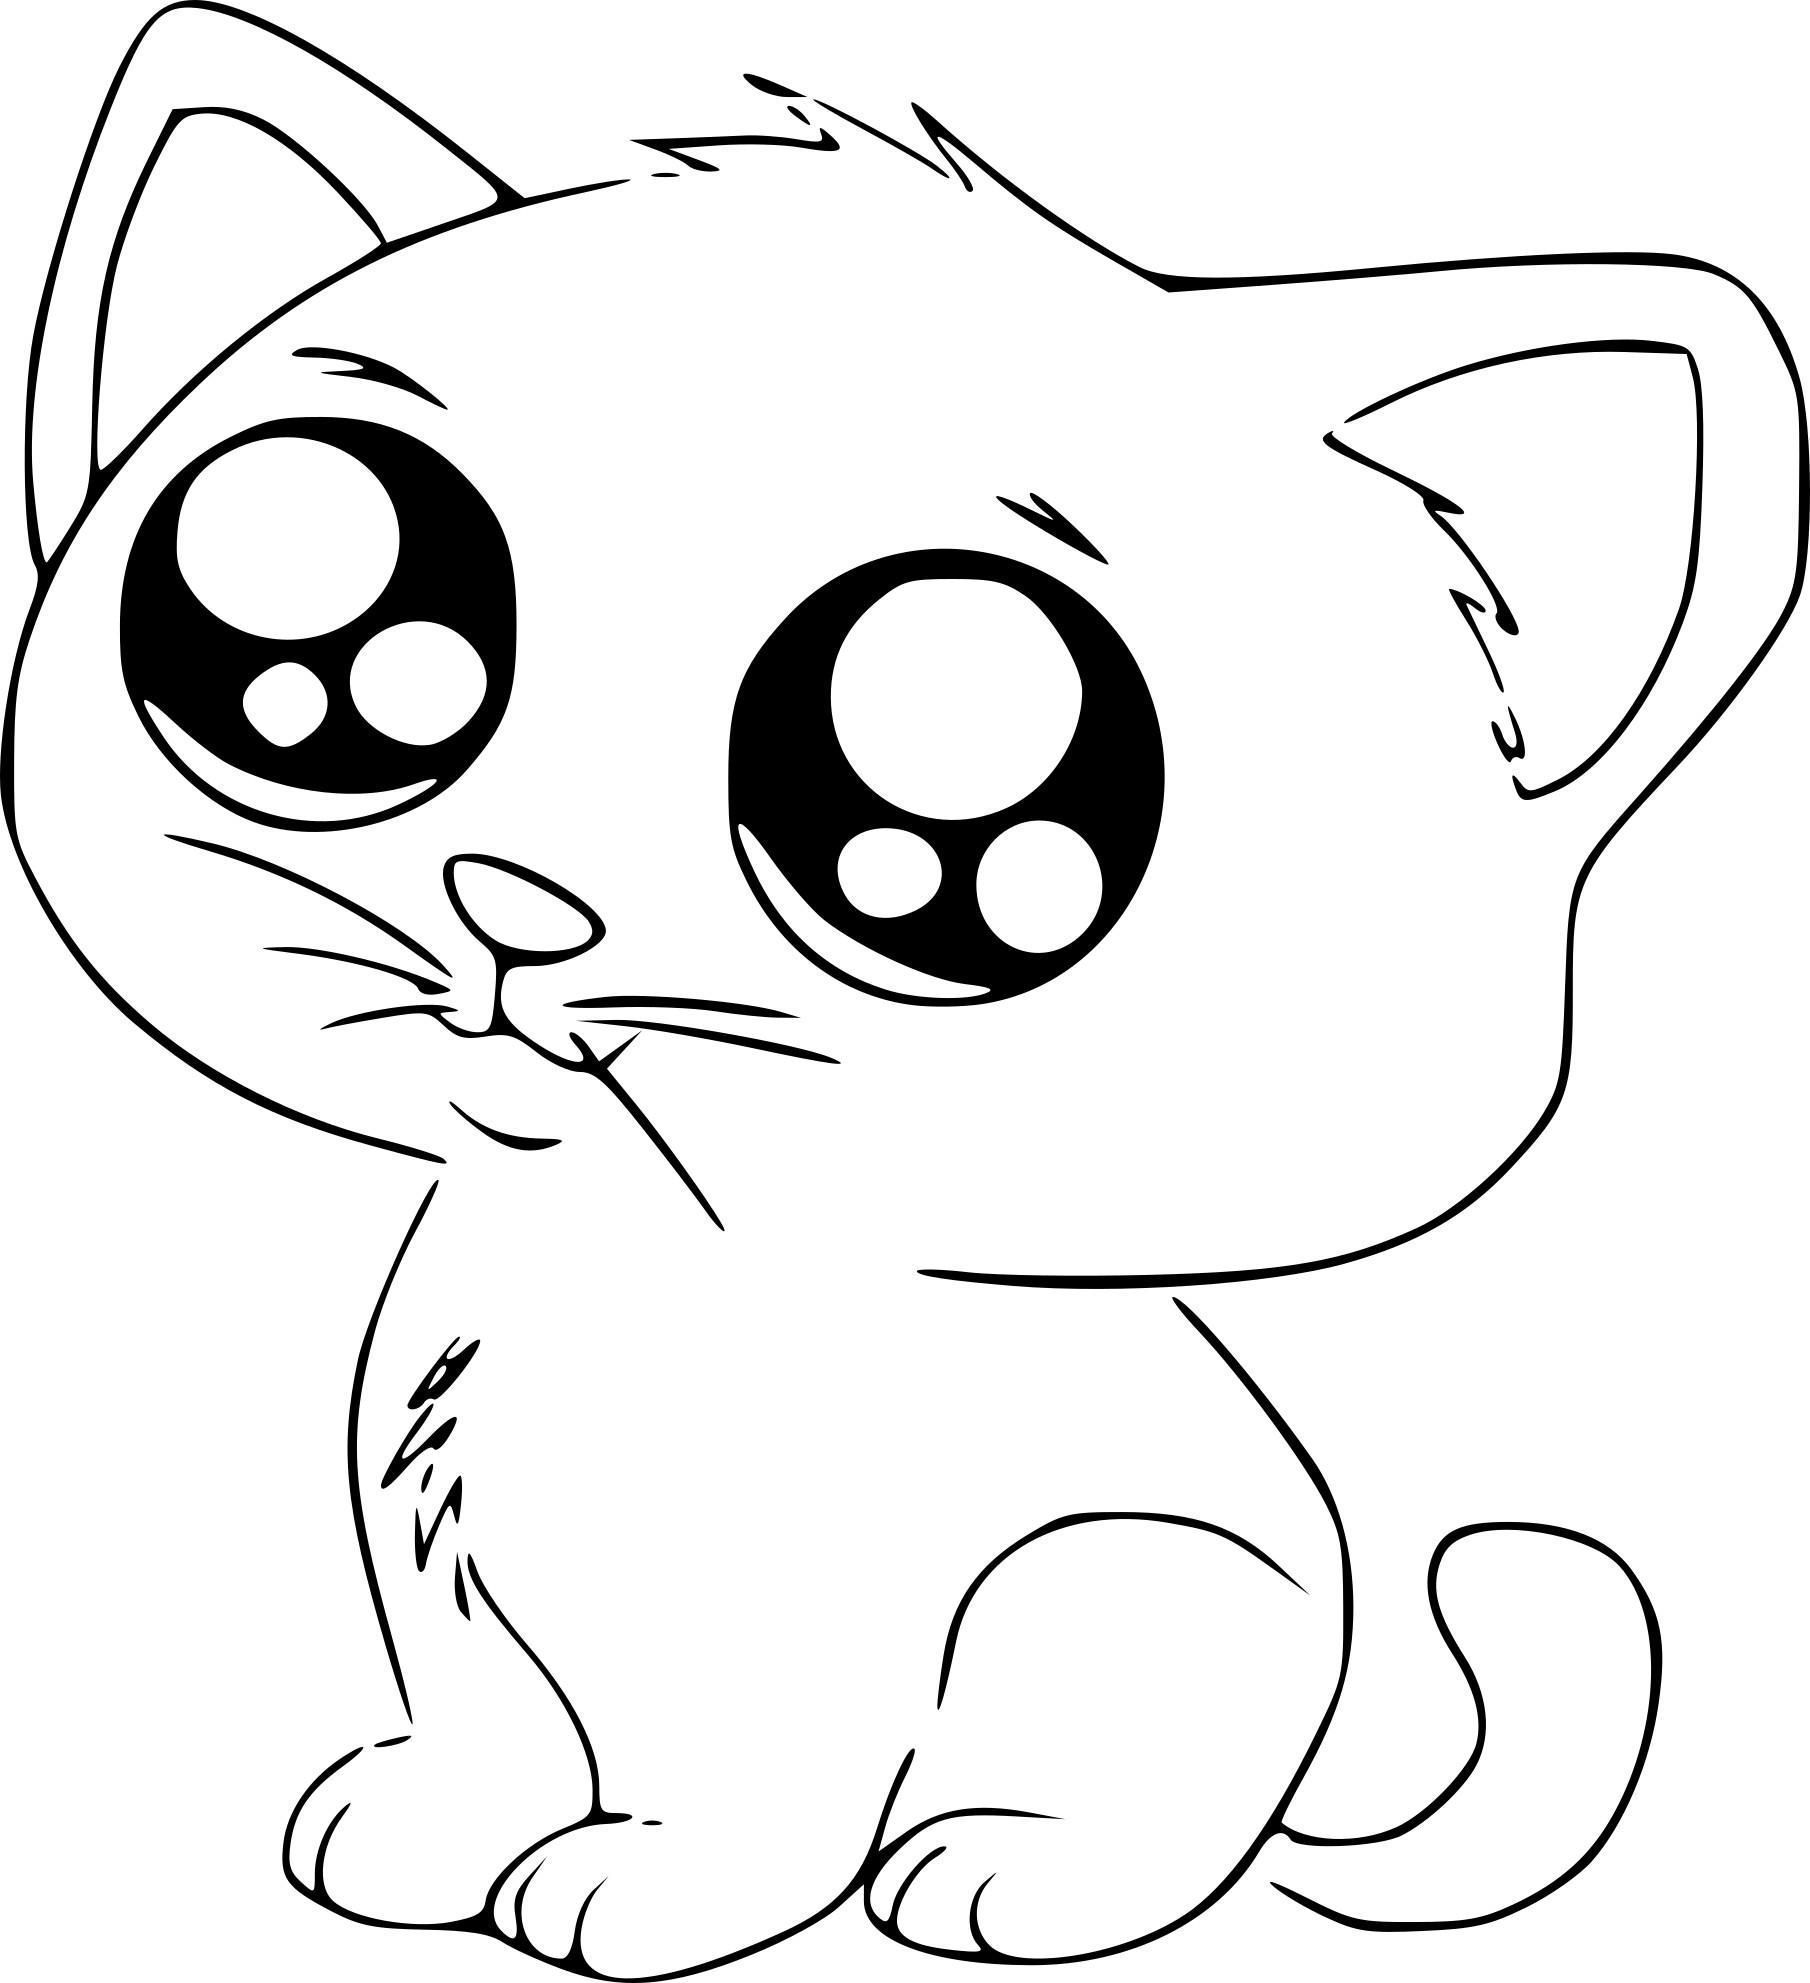 8 Coloriage Imprimer Chat Cute Cartoon Drawings Kitten Drawing Cartoon Drawings Of Animals